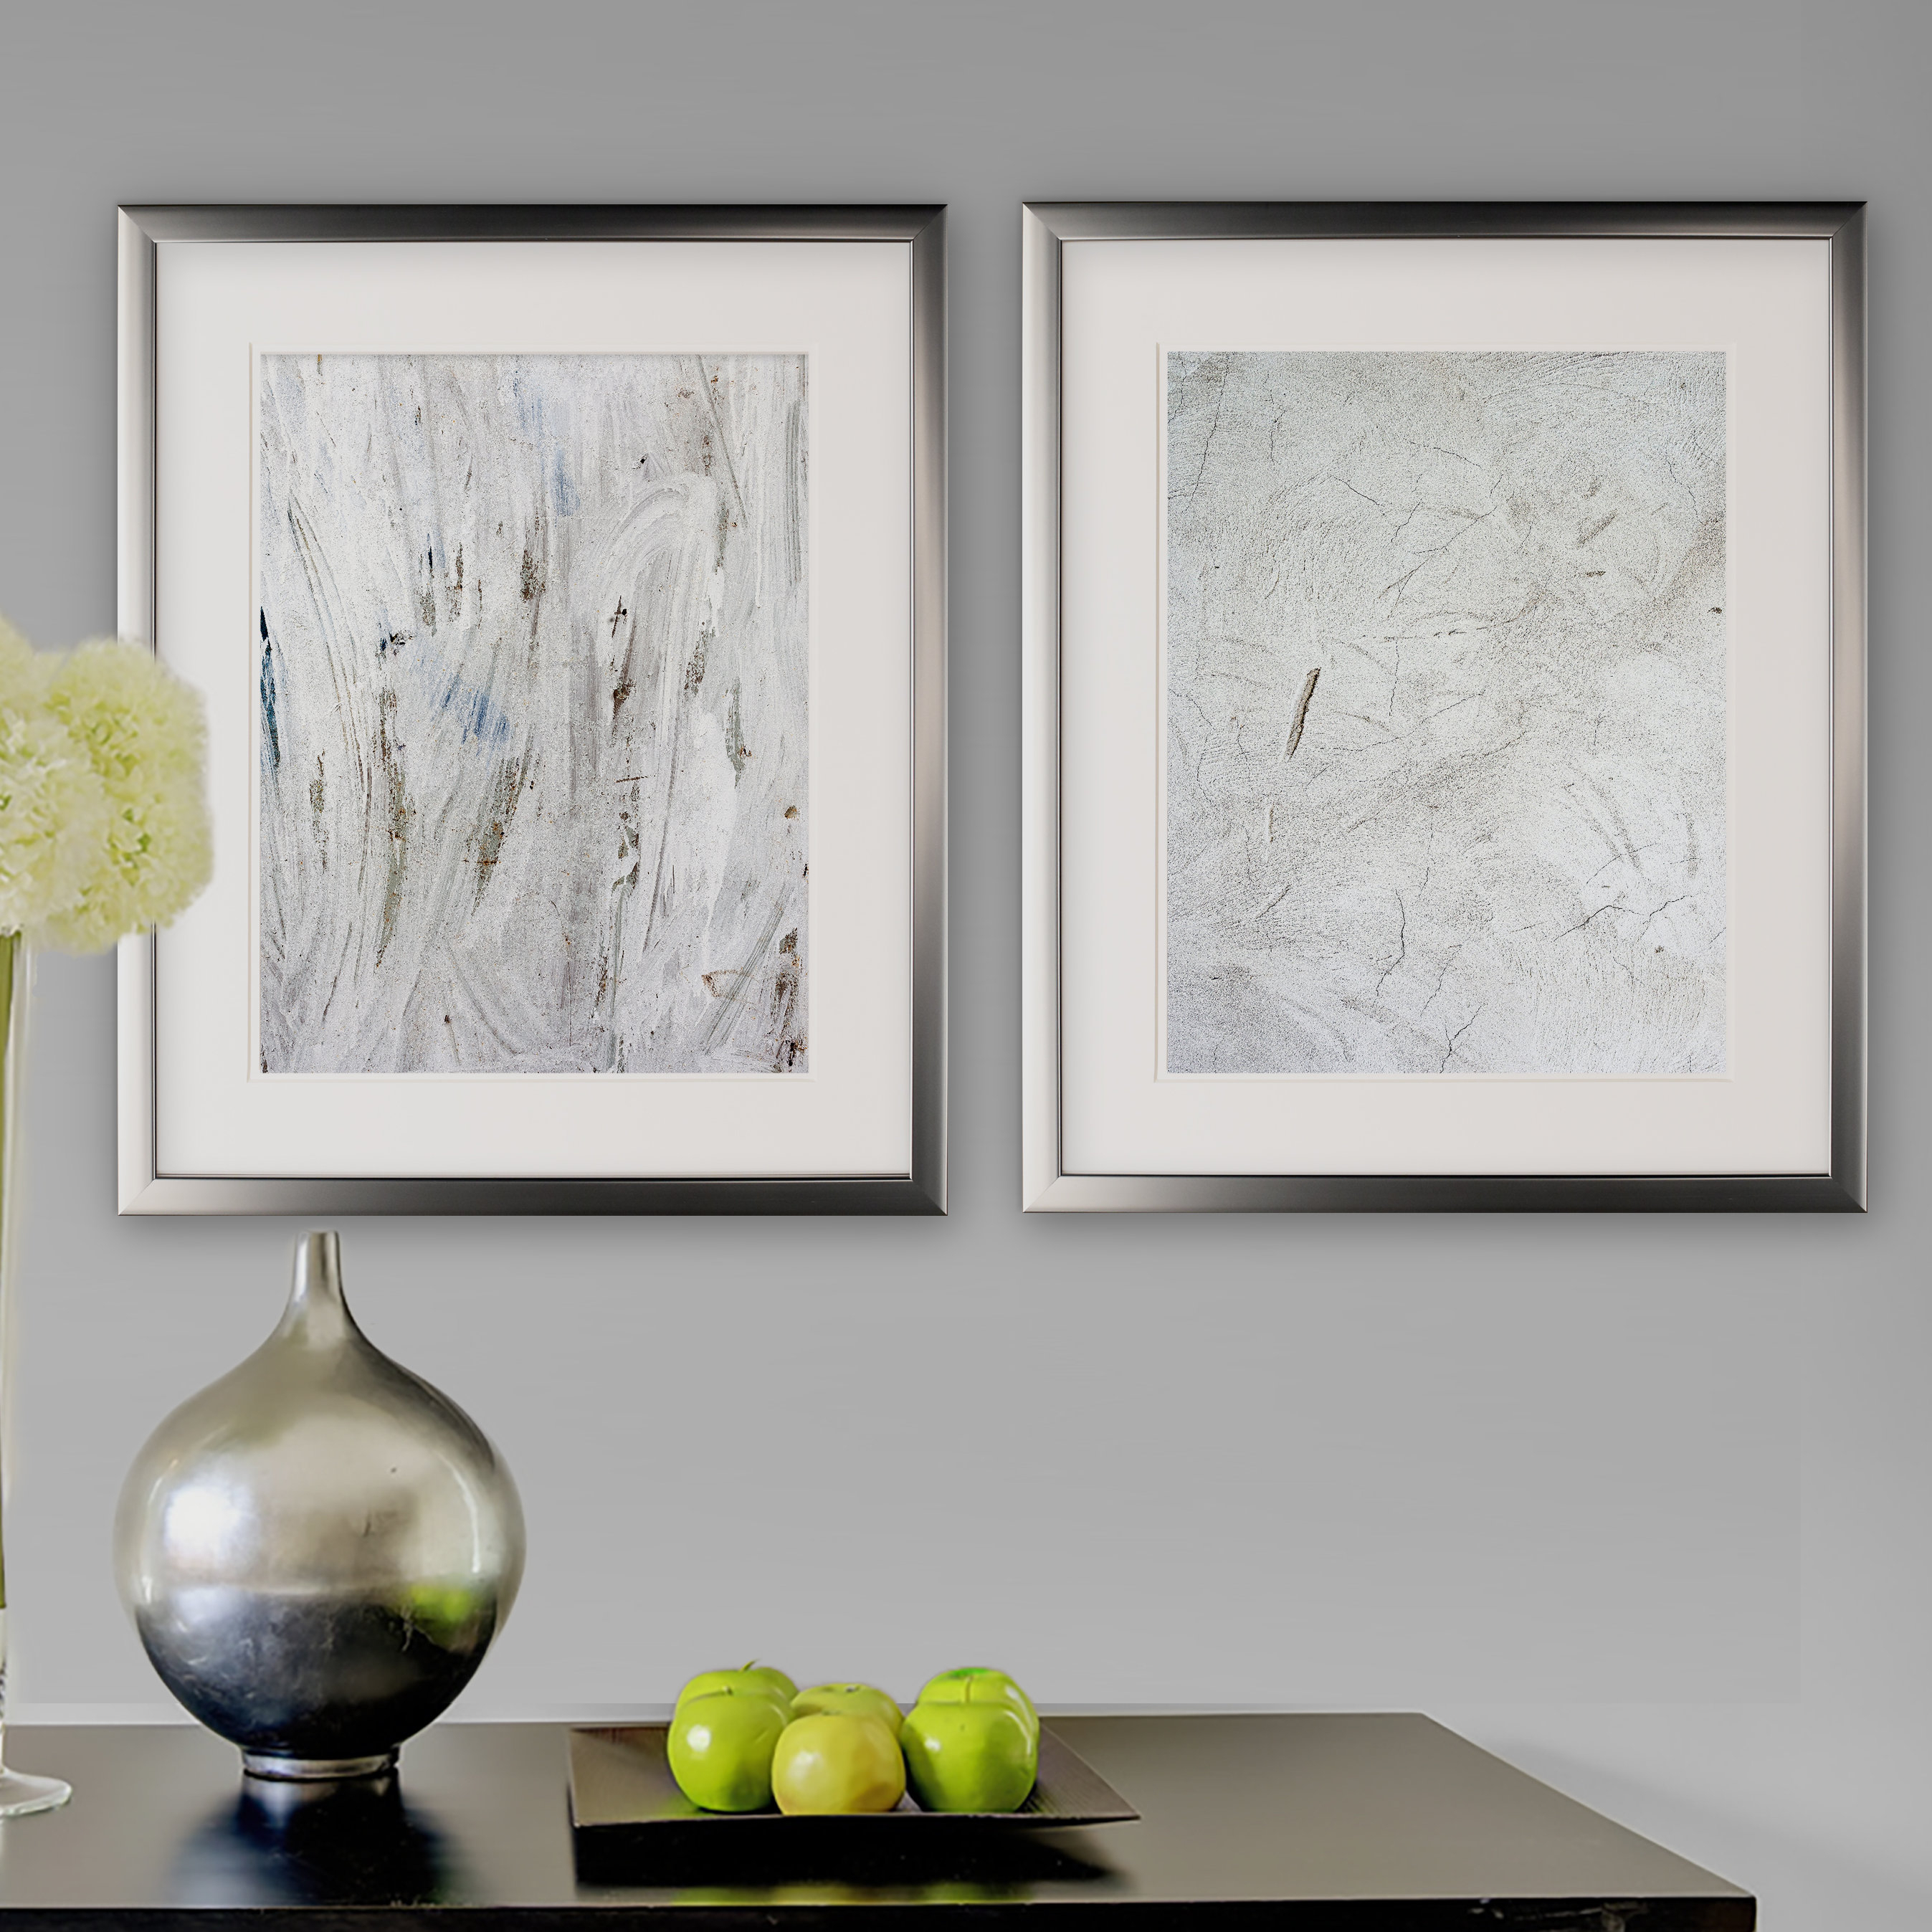 'abstract Stone I' 2 Piece Framed Graphic Art Print Set intended for 3 Piece Wall Decor Sets By Wrought Studio (Image 1 of 30)